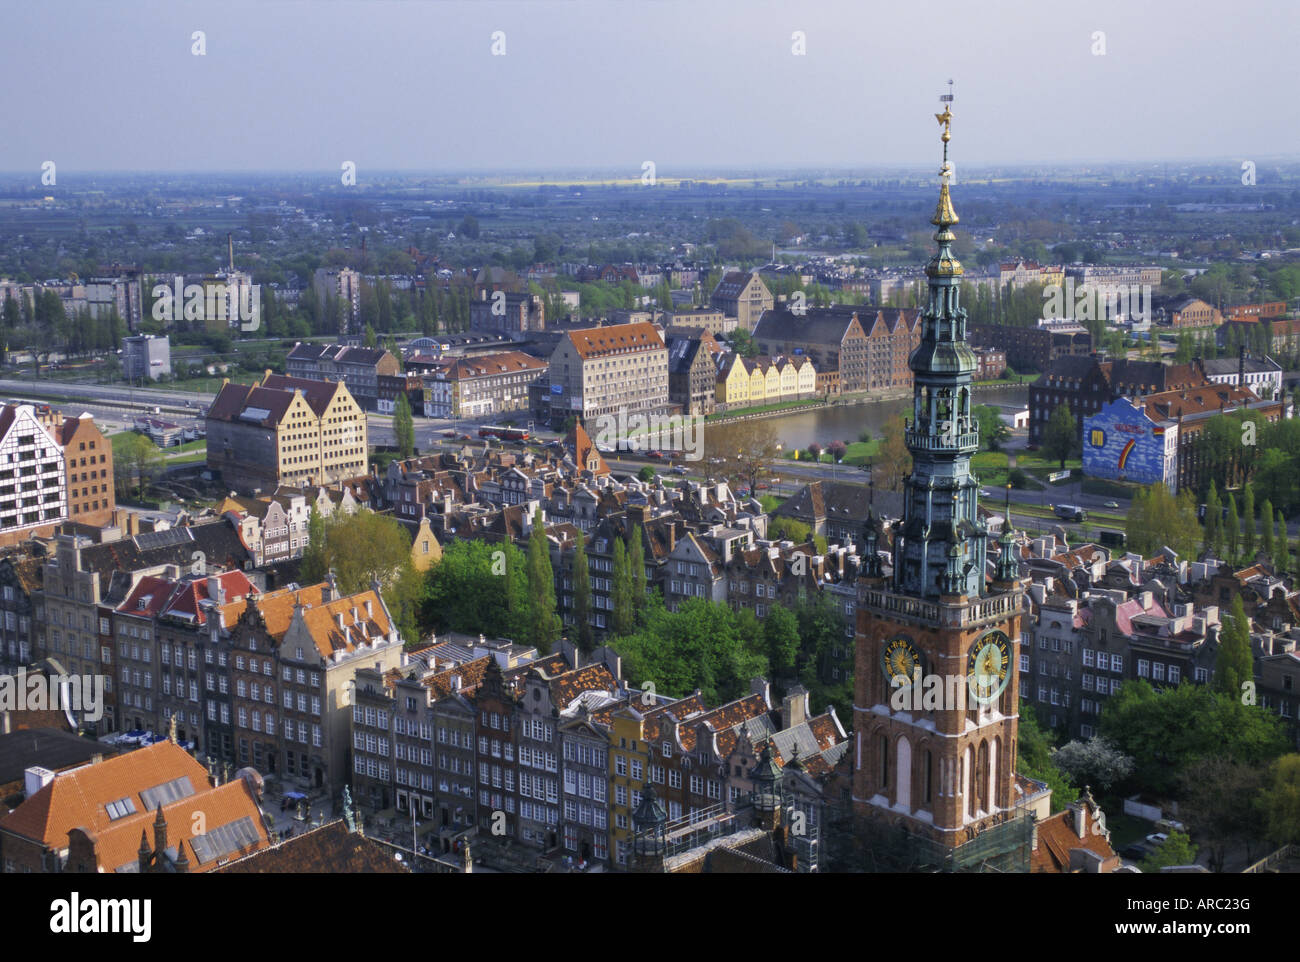 City centre from high view point, Gdansk, Pomerania, Poland, Europe - Stock Image